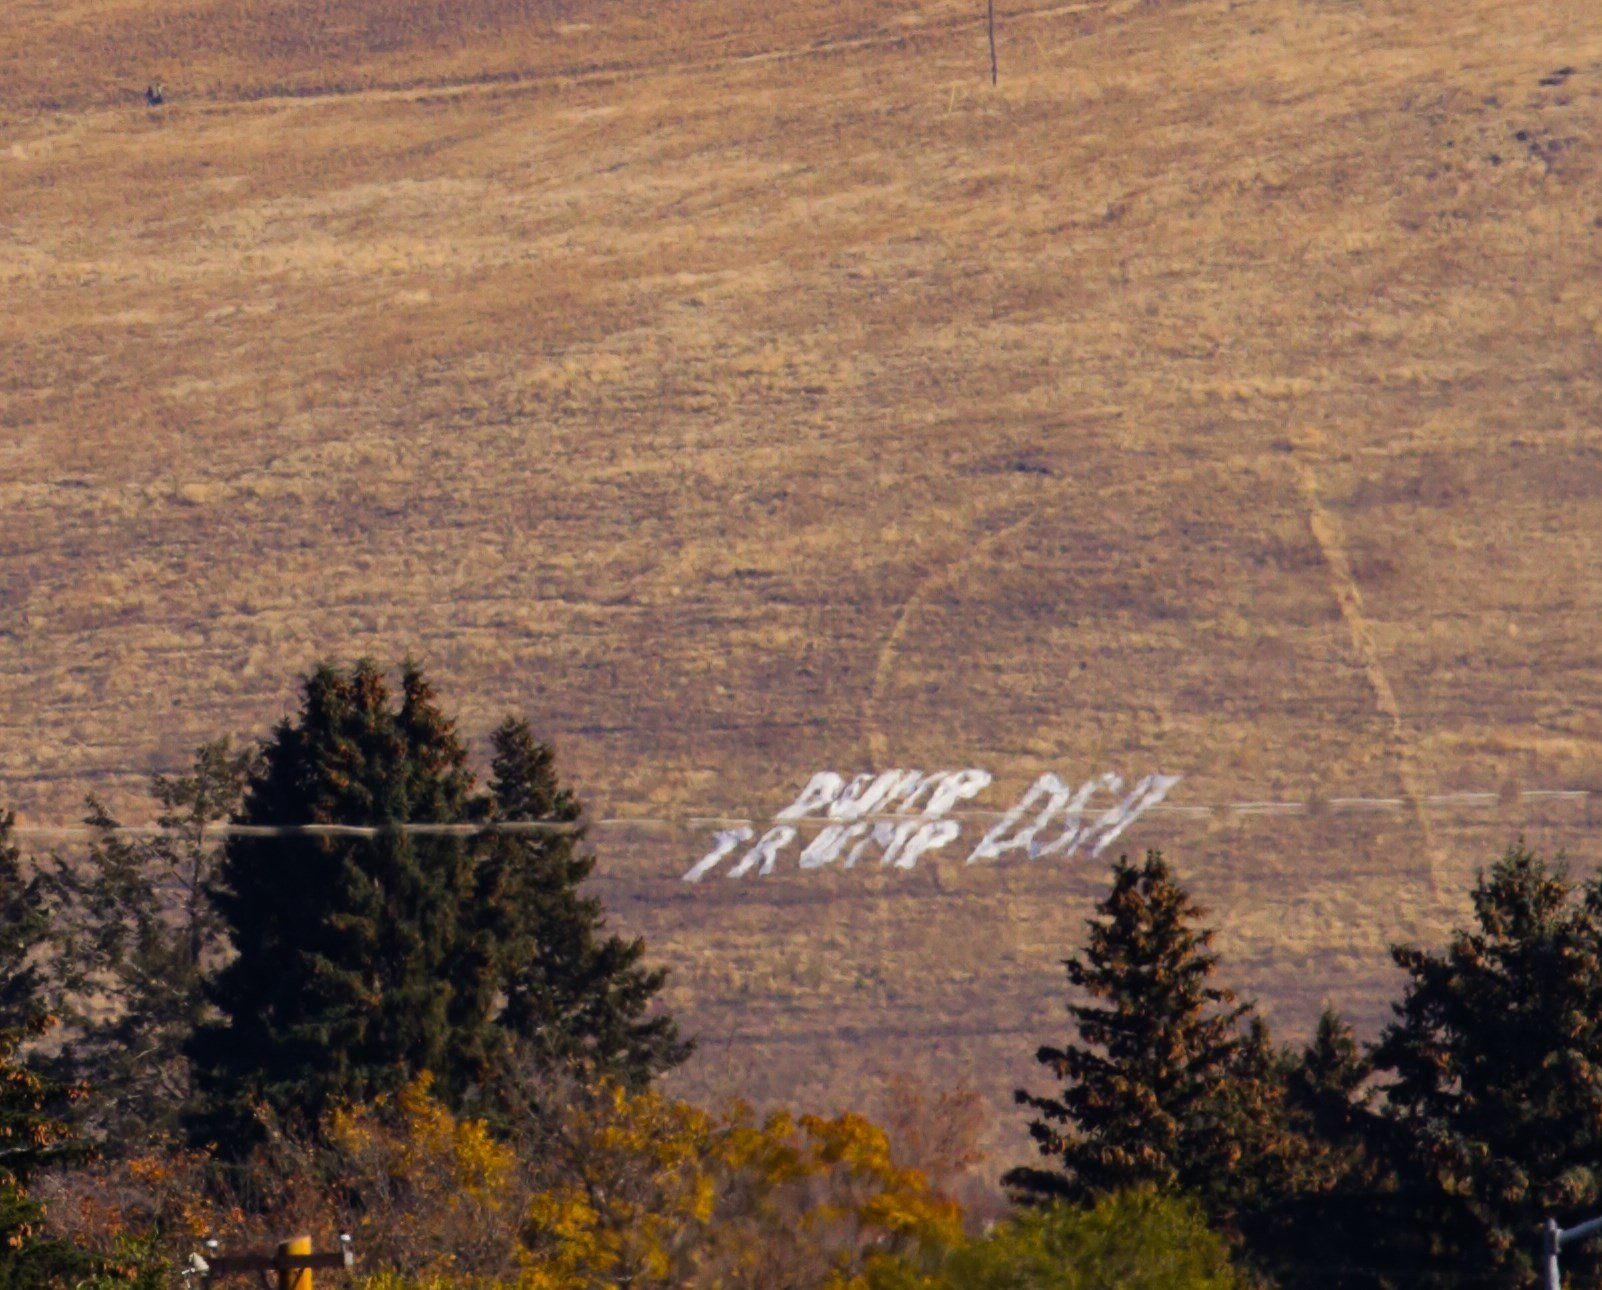 """""""Dump Trump DSA"""" is written on the hillside to welcome President Donald Trump to the Garden City."""